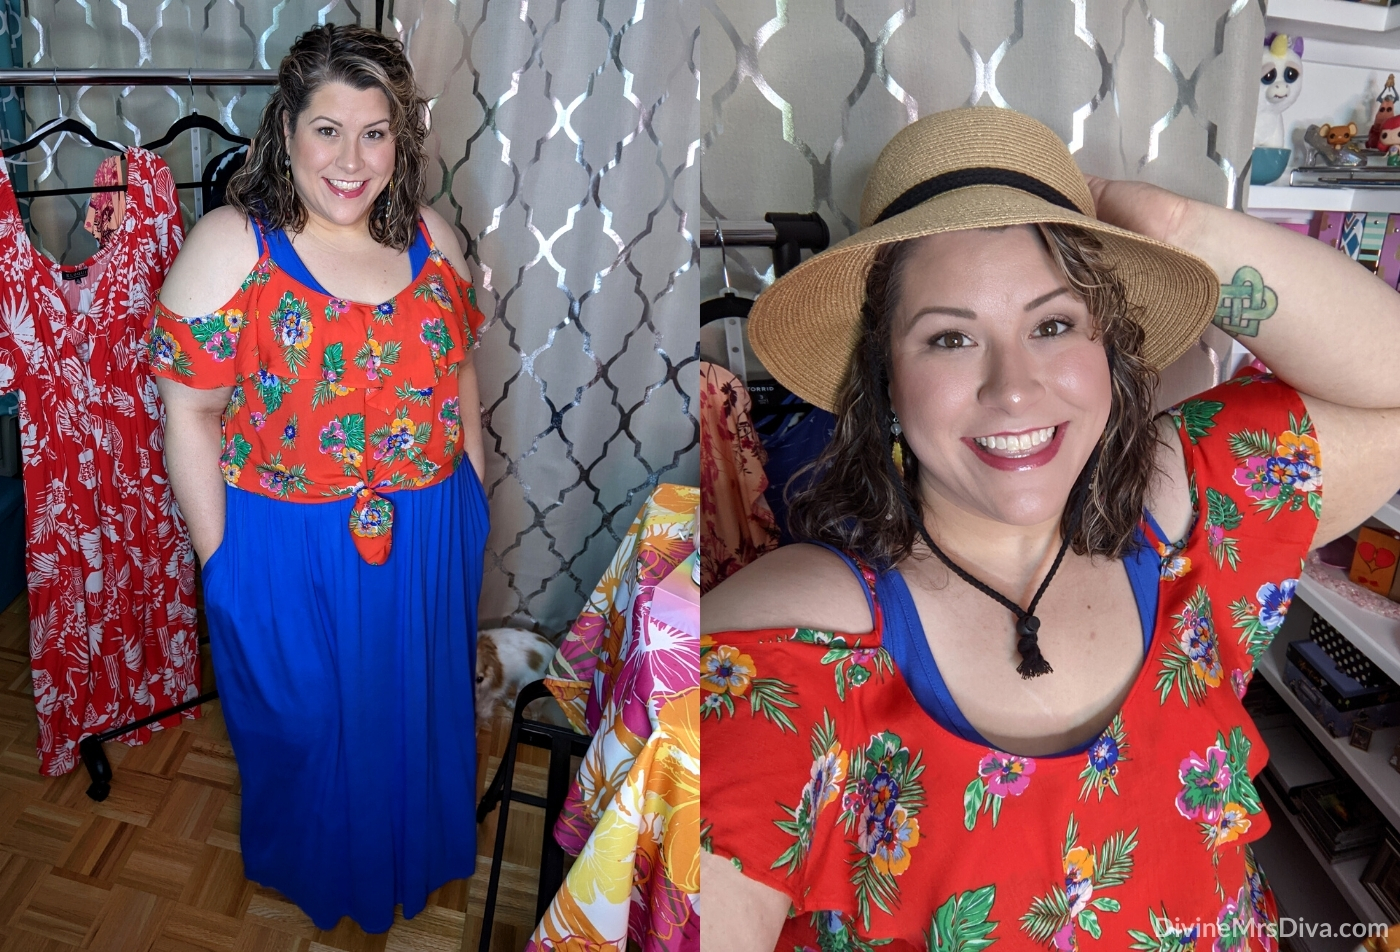 KATU Afternoon Live: Summer Must-Haves - DivineMrsDiva.com #plussizefashion #psootd #ootd #plussizeclothing #outfit #style #40style #40plusblogger